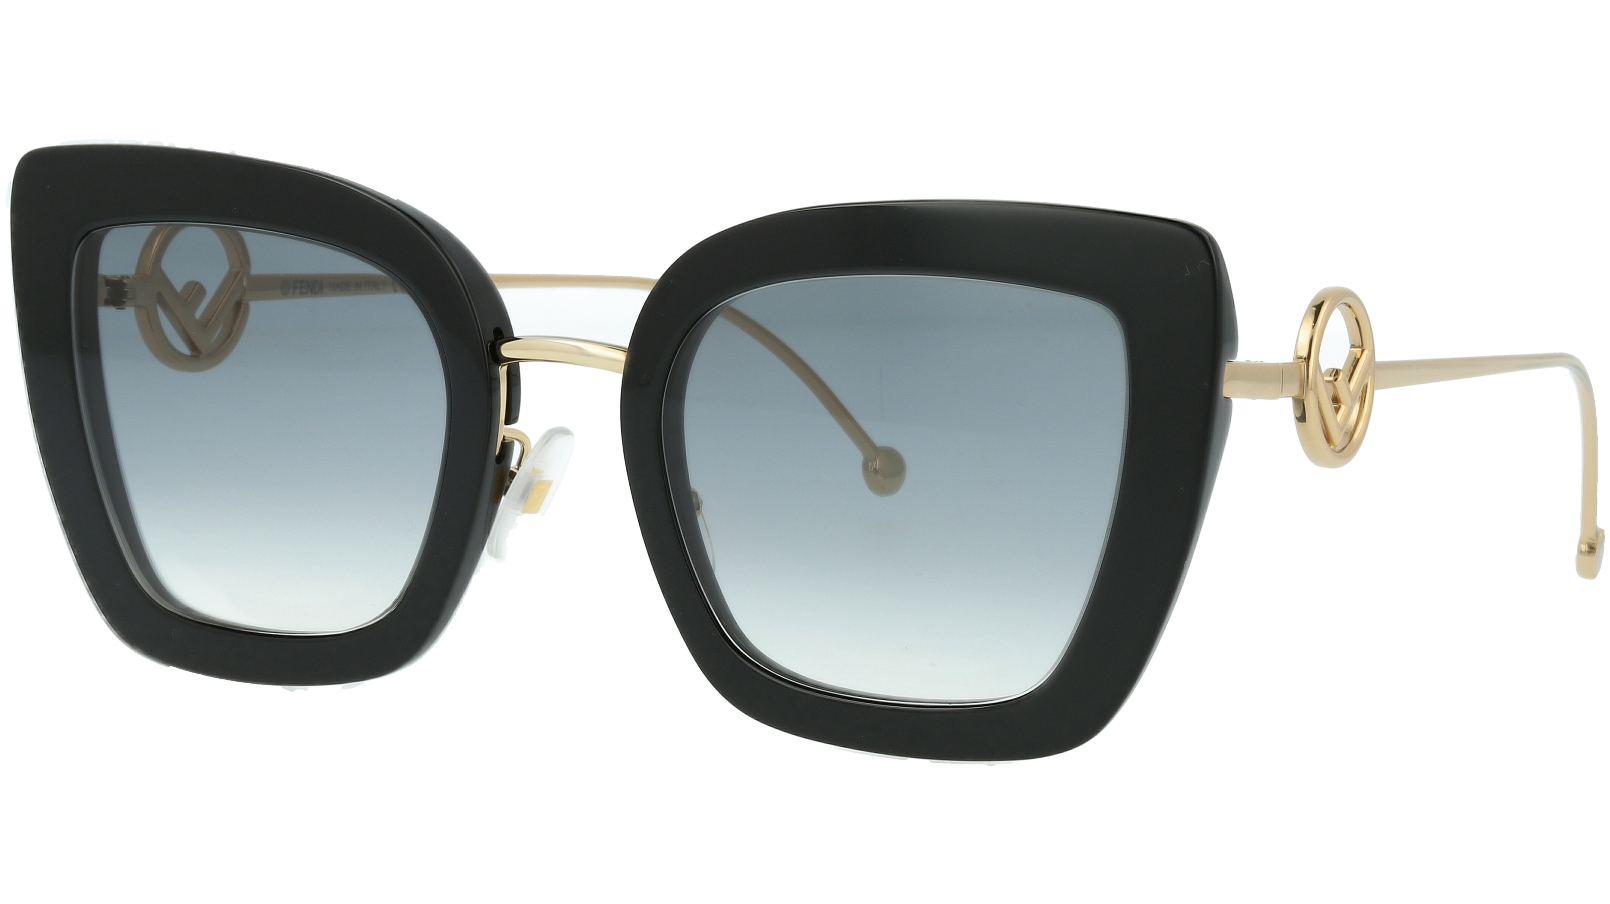 FENDI FF0408/S 80790 51 Black Cat-Eye Sunglasses